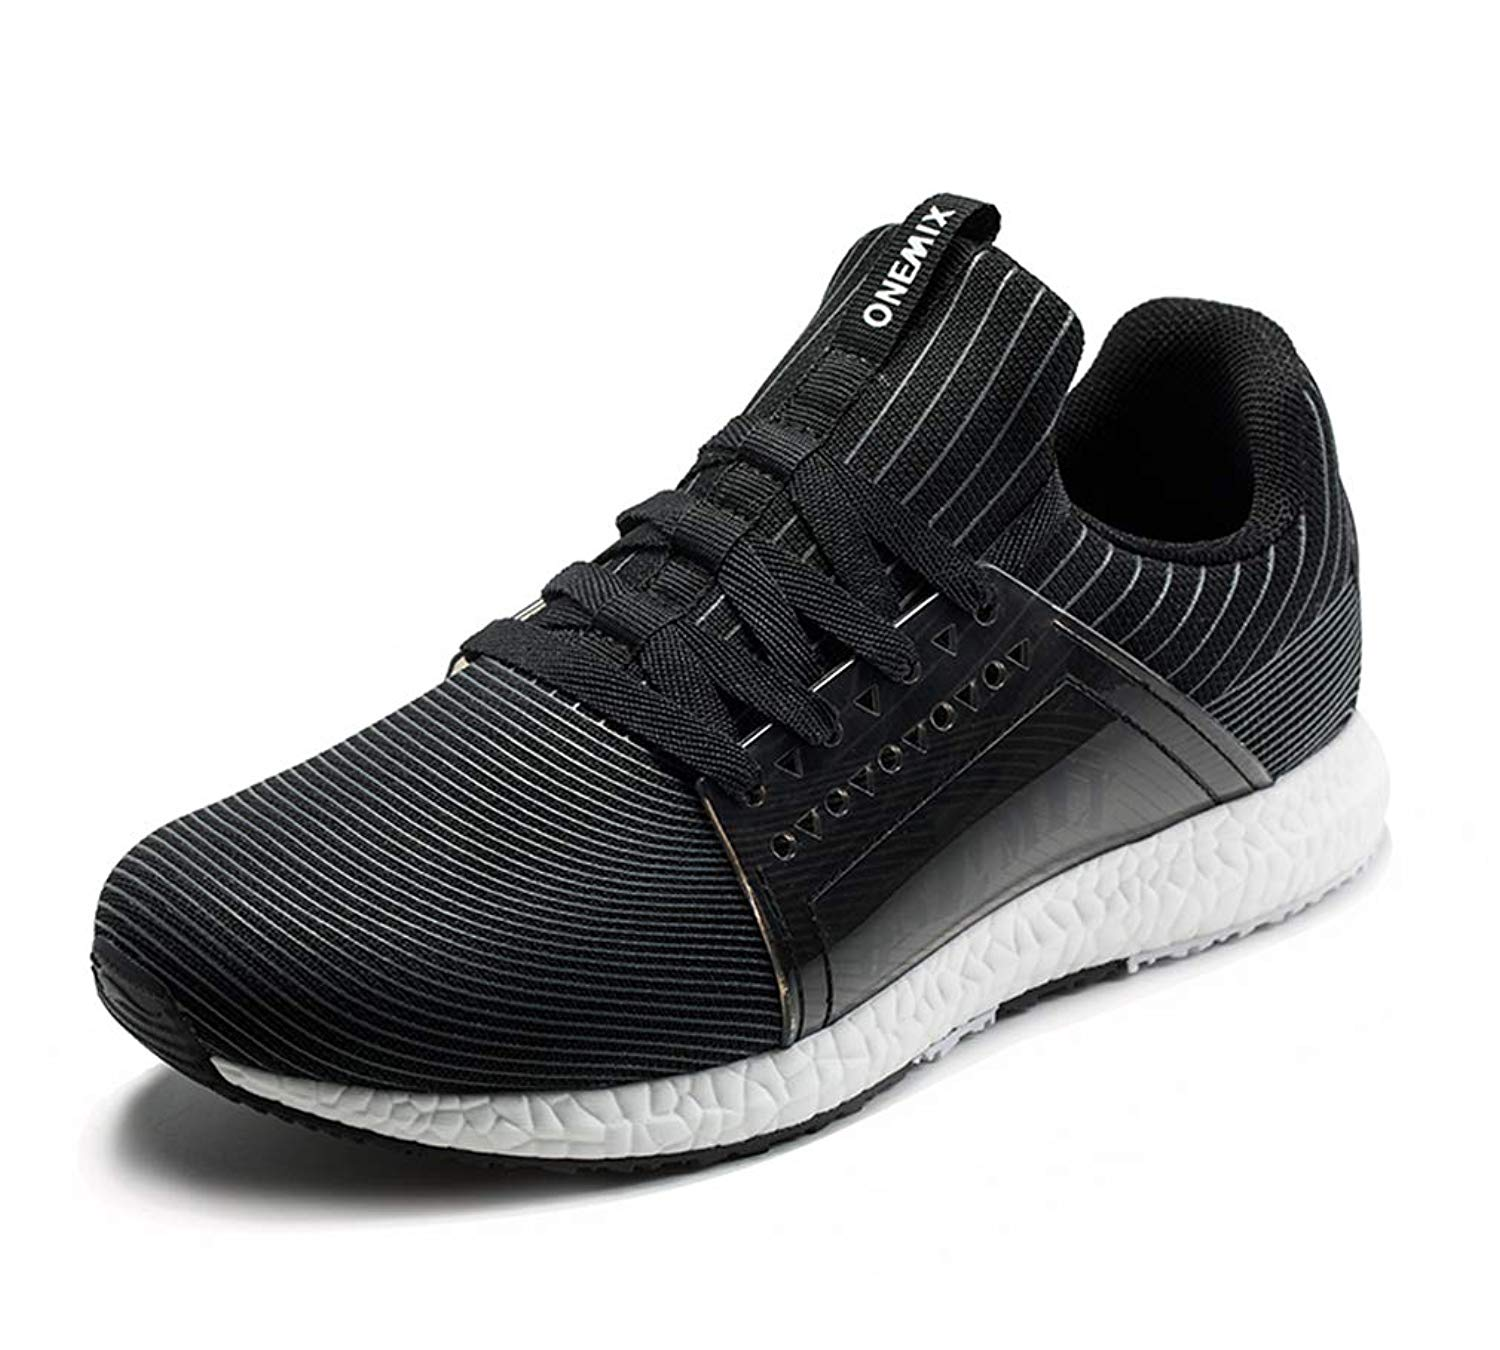 feb7a4bed19 UB-ONEMIX Unisex Lightweight Running Shoes Cool Sneakers Walking Jogging Shoes  9.5 D(M